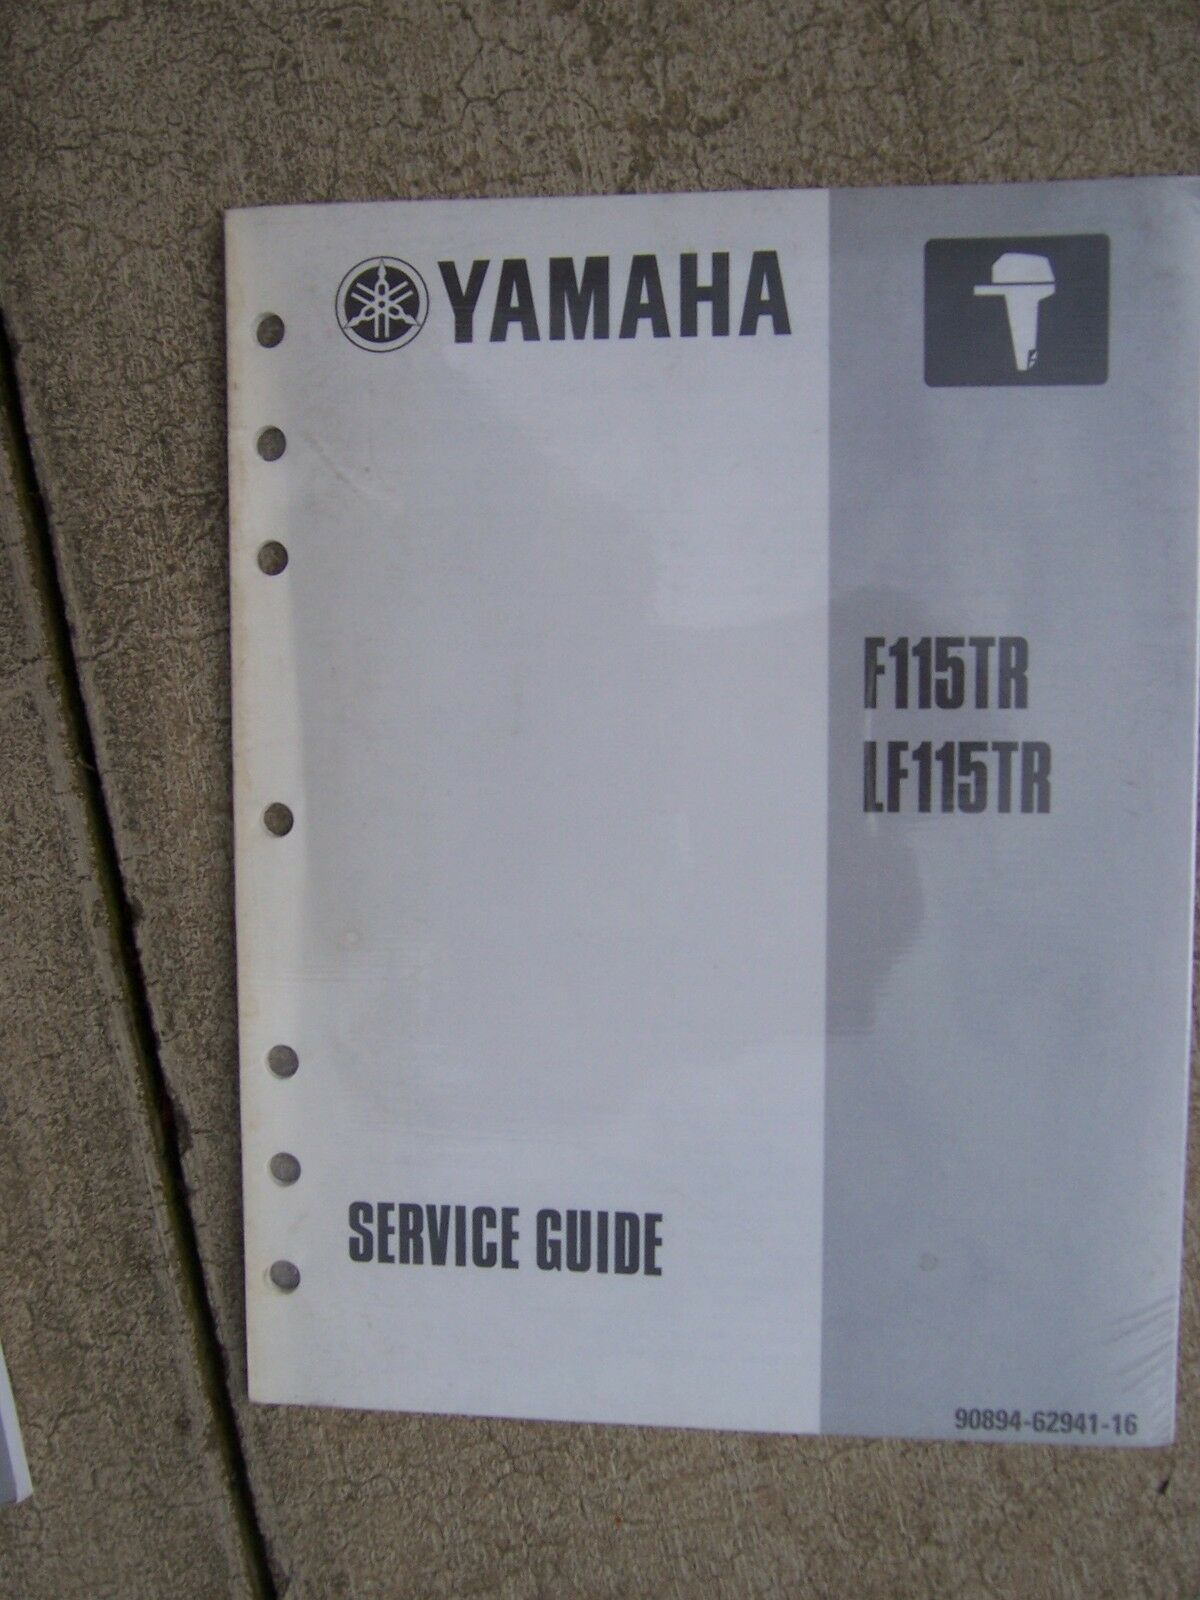 1999 Yamaha Outboard Motor F115TR LF115TR Service Manual Guide MORE IN  STORE U 1 of 1Only 1 available ...